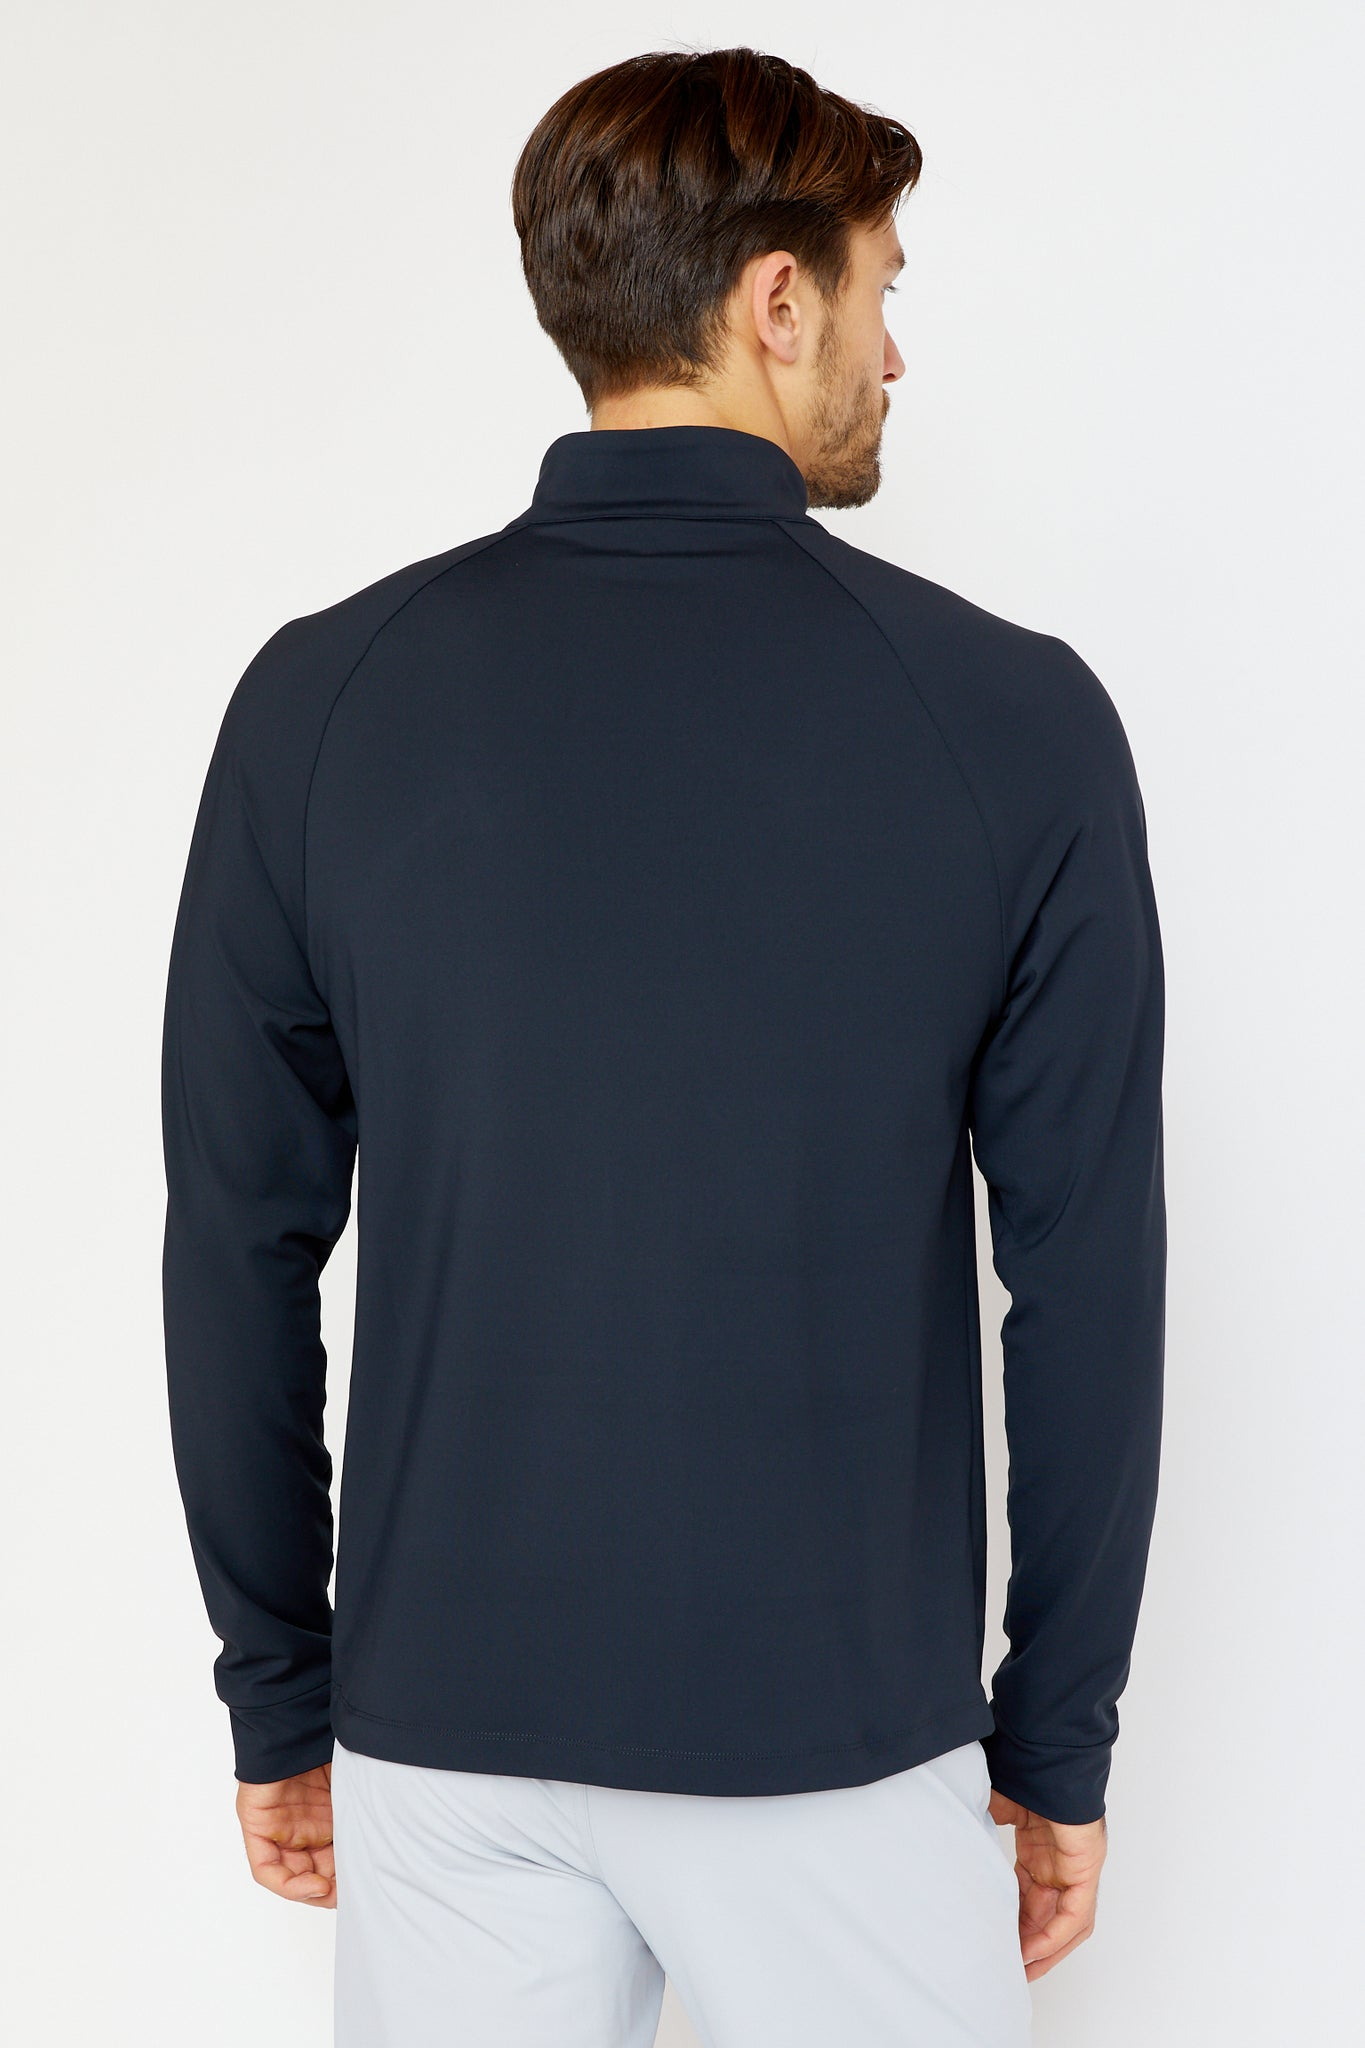 Doughty Quarter Zip in Black